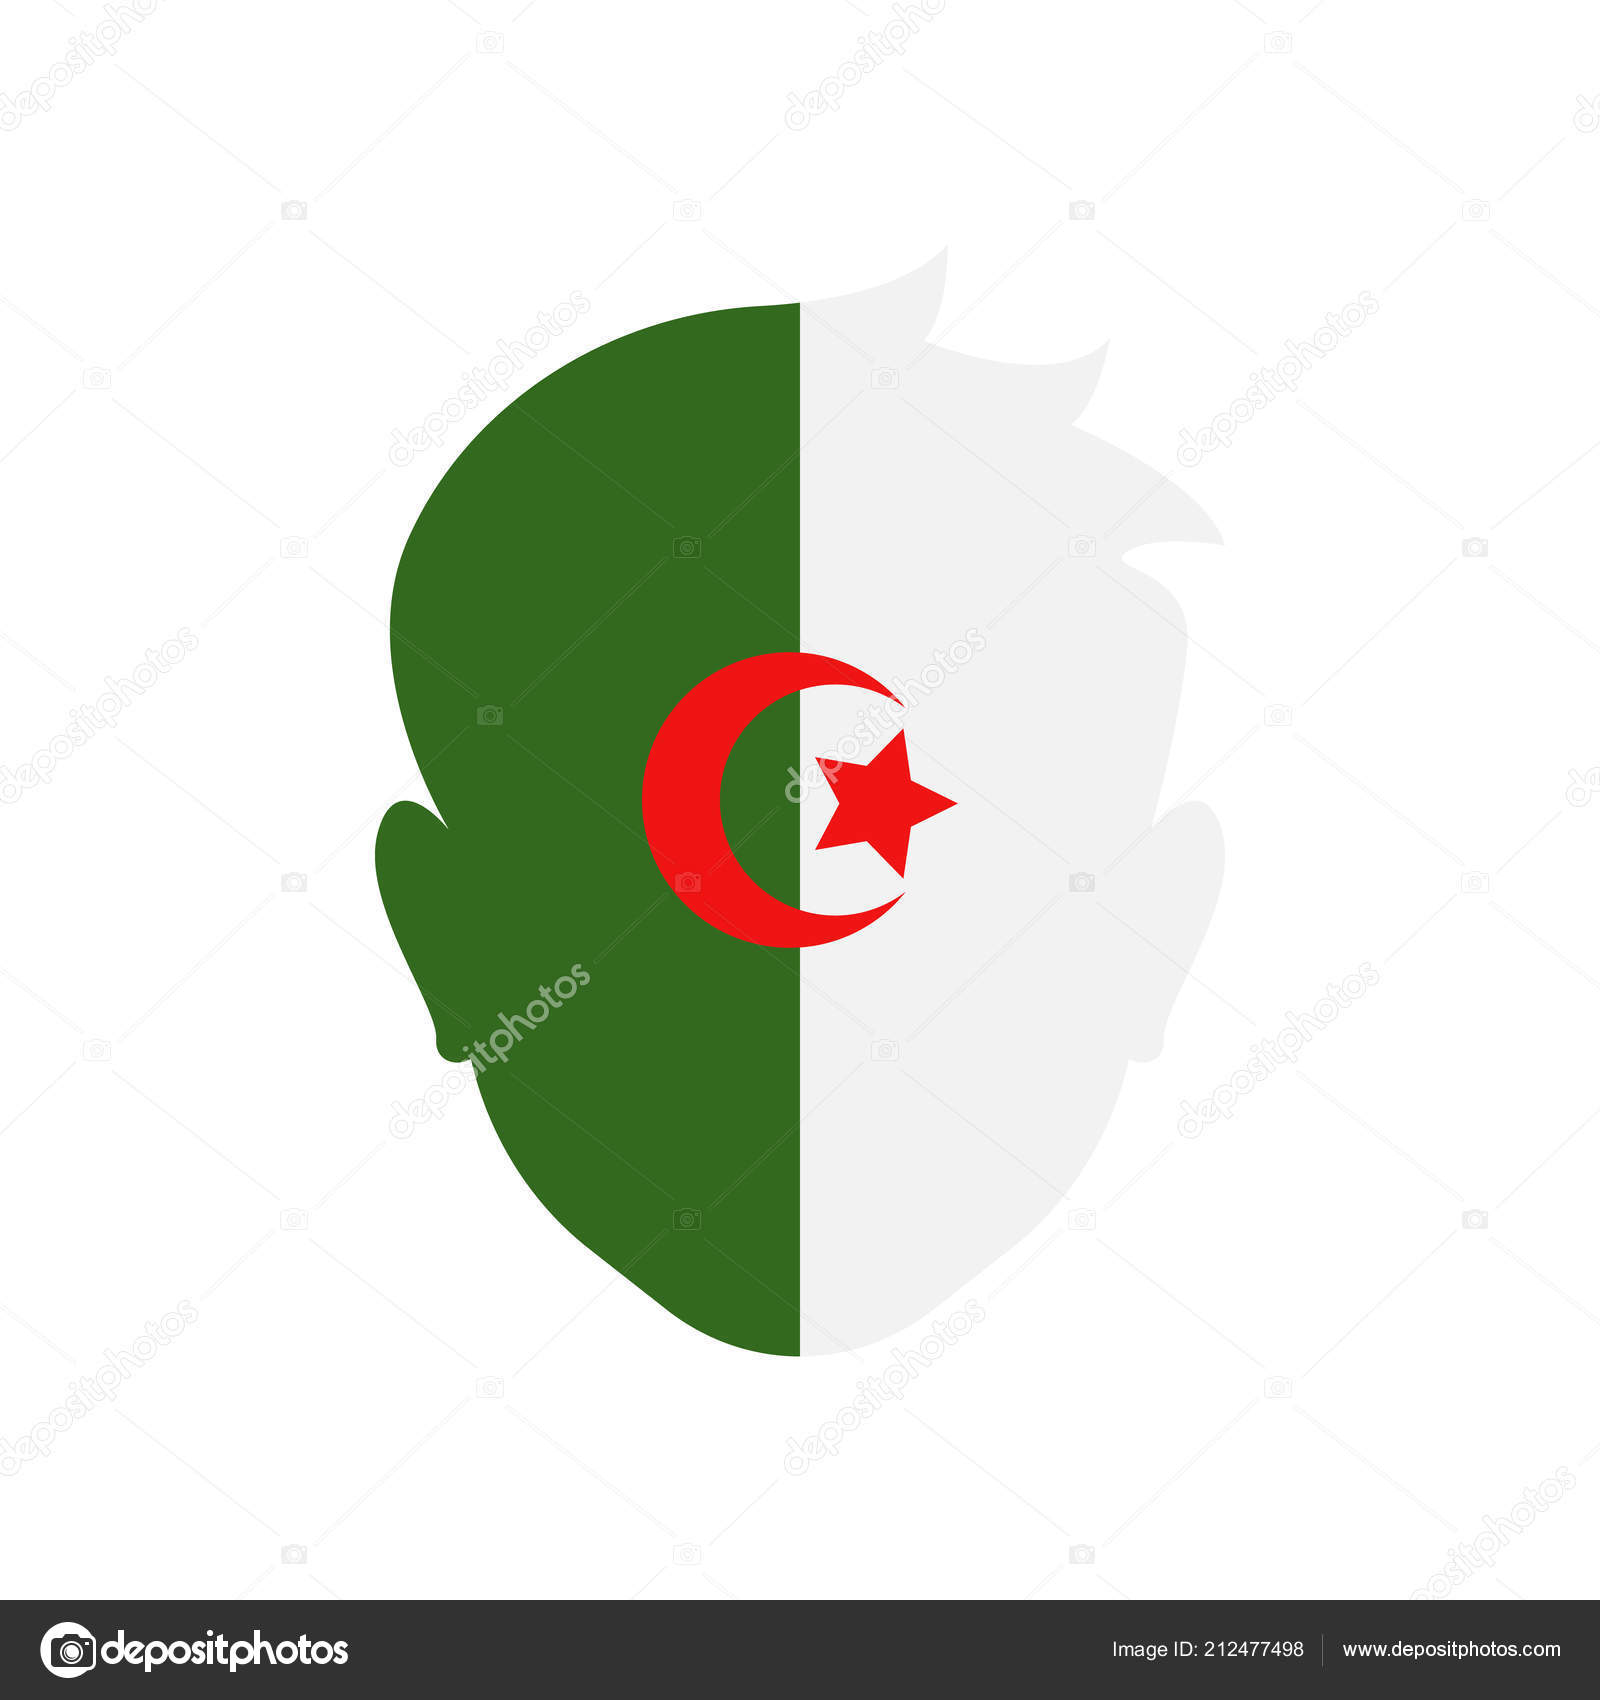 Algeria icon vector sign and symbol isolated on white